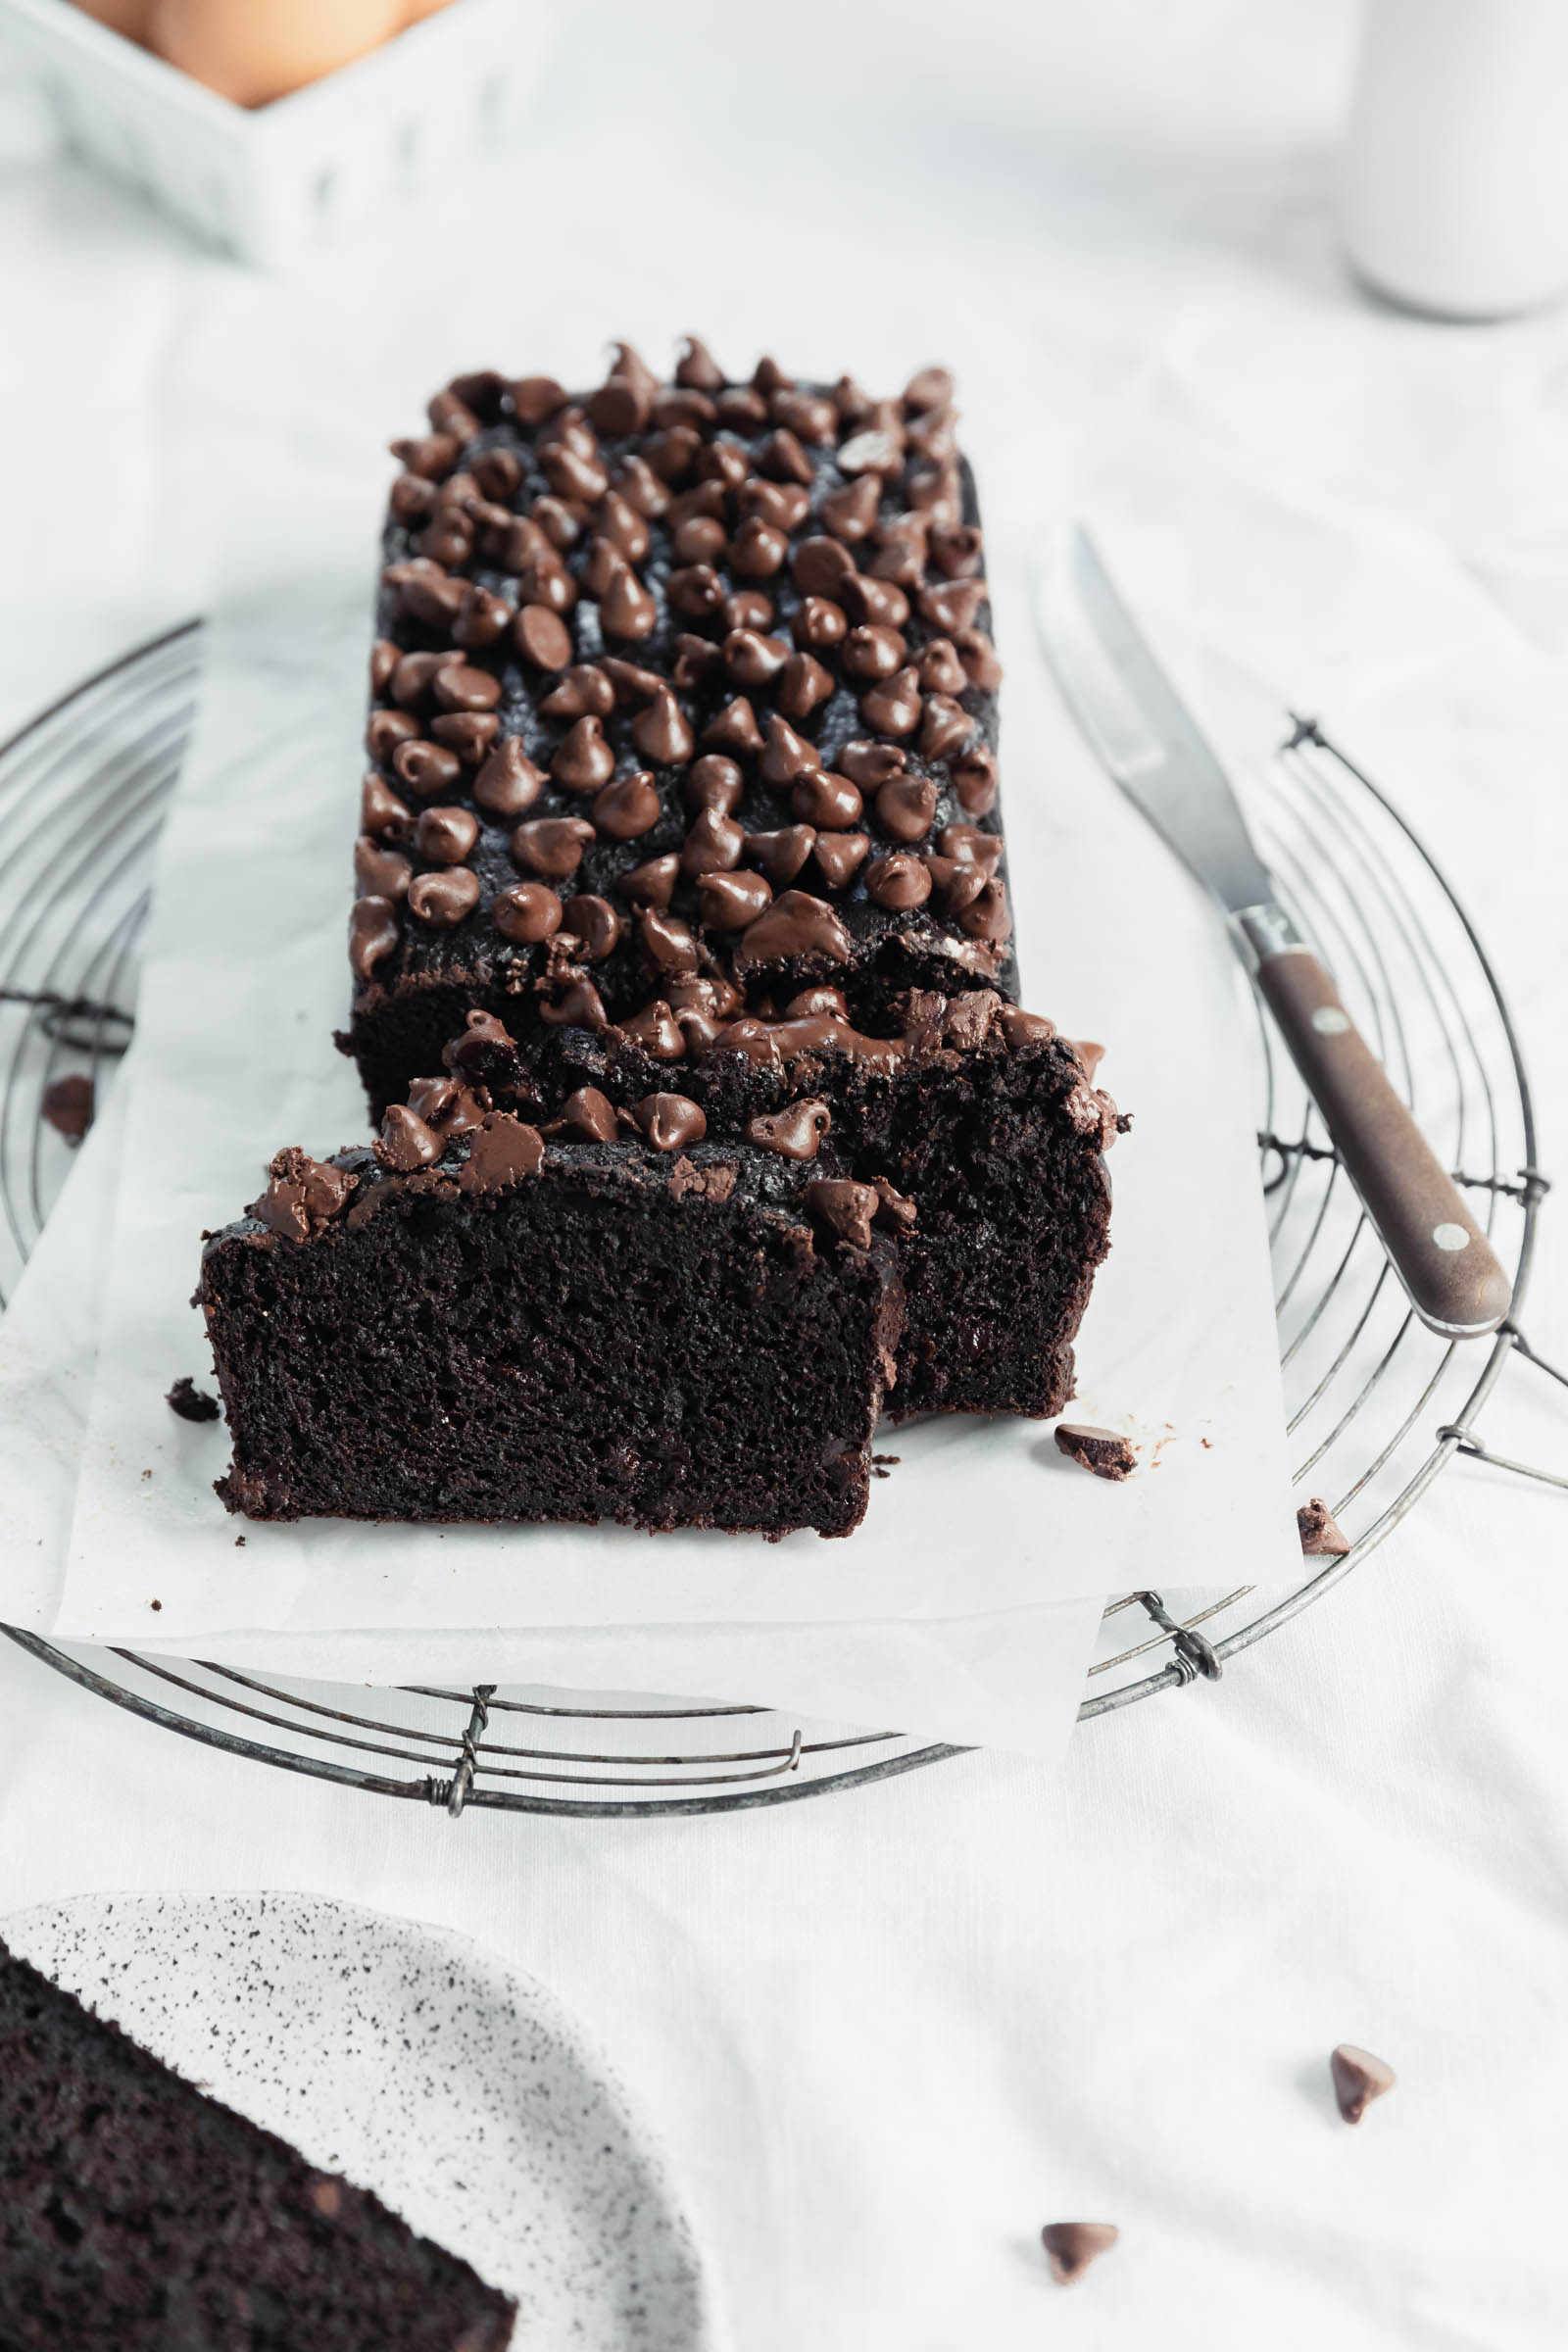 double chocolate zucchini bread with a slice and chocolate crumbs